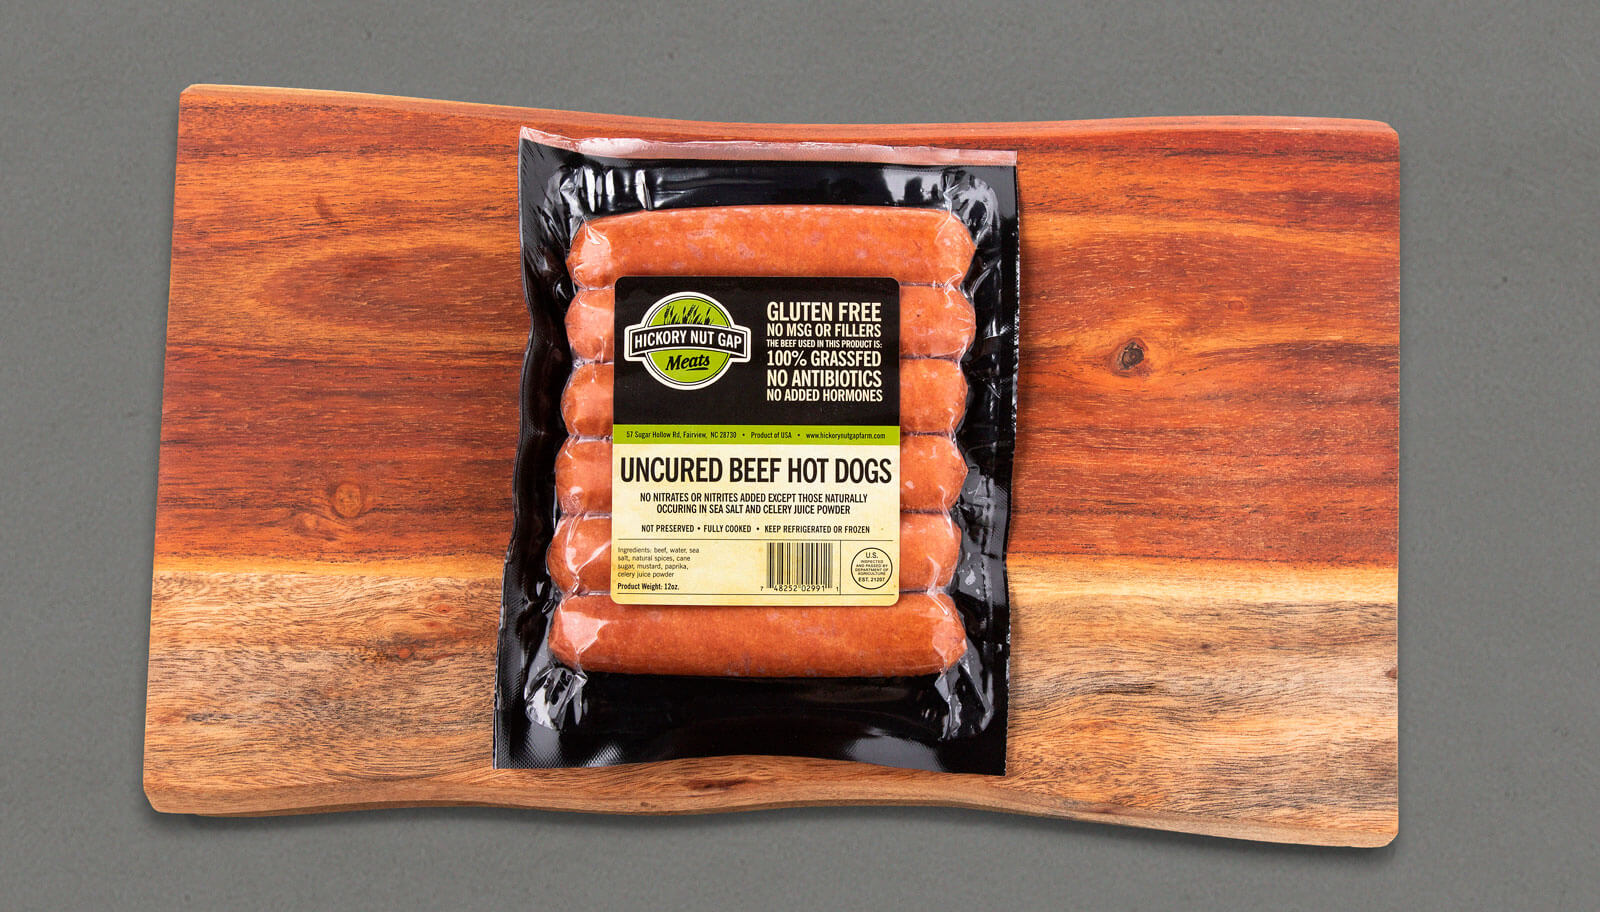 Hickory Nut Gap Meats Hot Dog label on package laying on wood cutting board